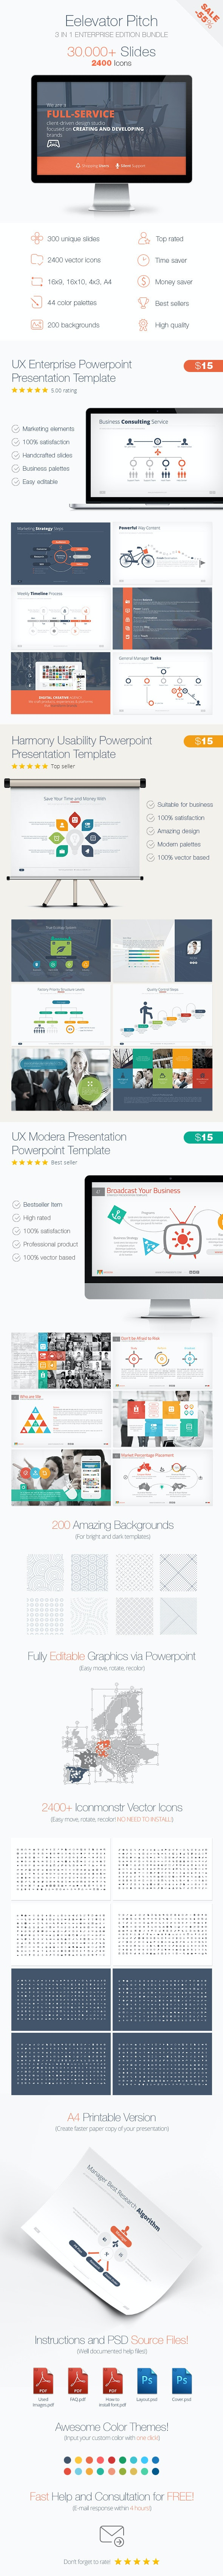 Elevator Pitch Powerpoint Presentation Bundle - Business PowerPoint Templates